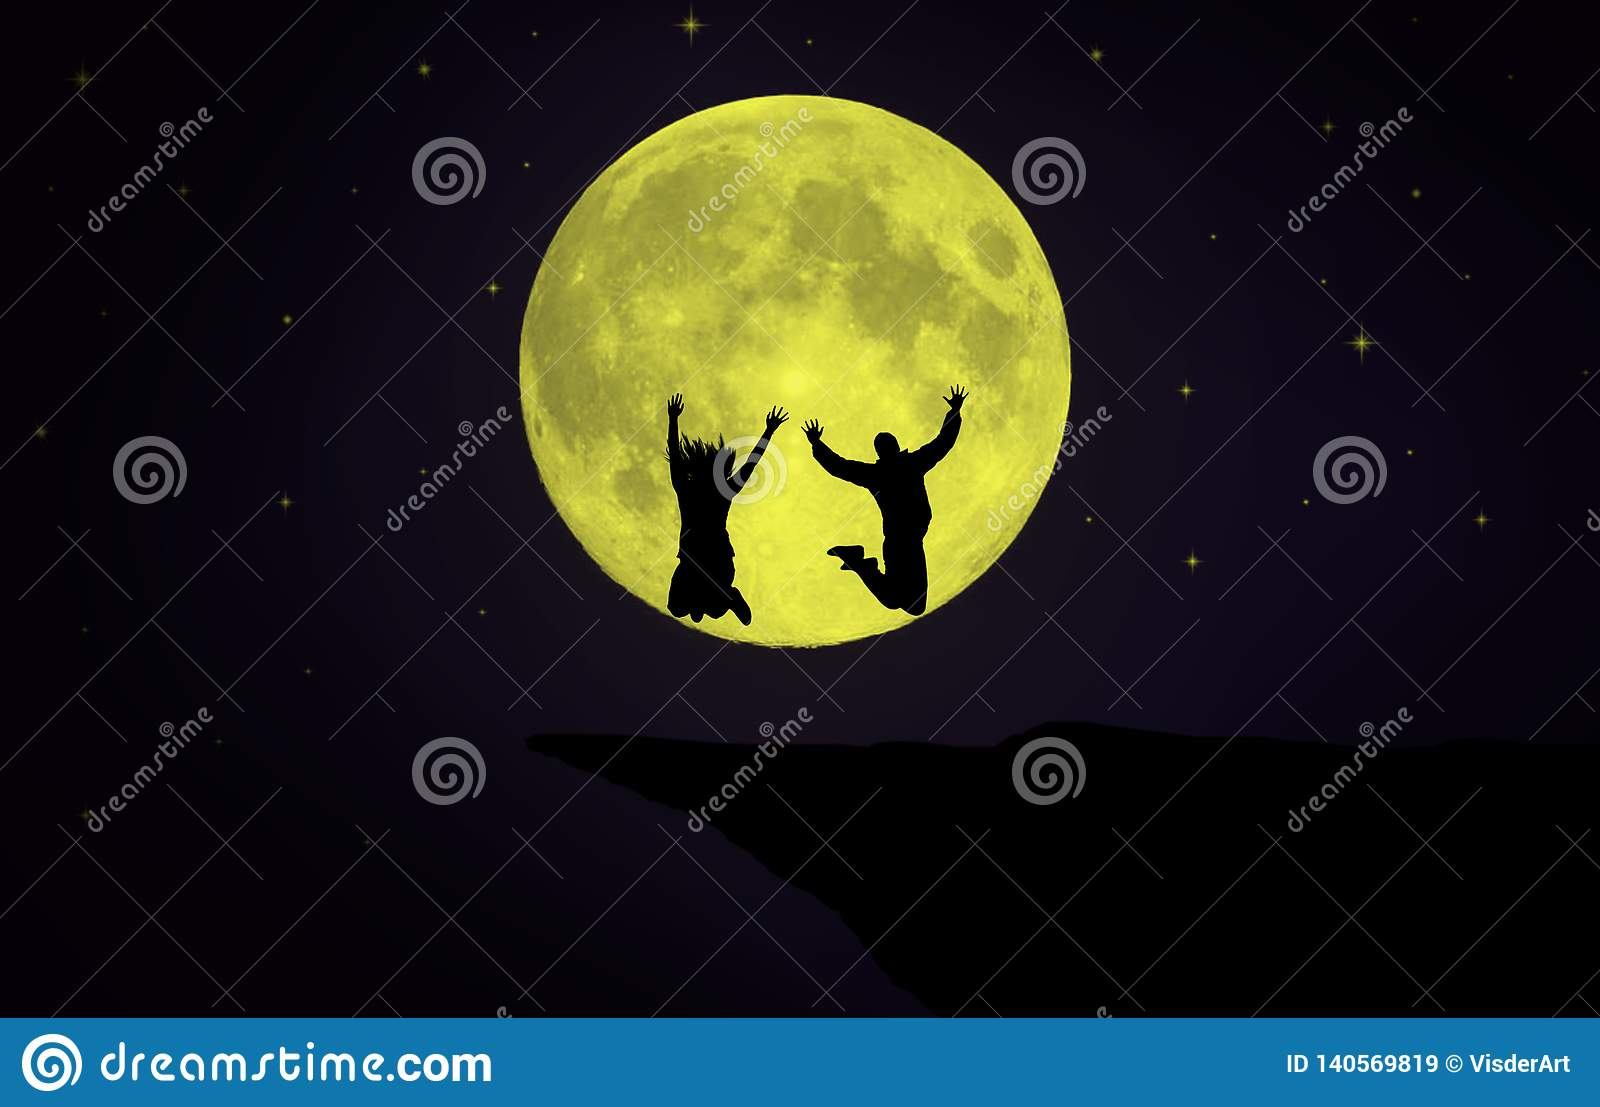 Couple jumping in front of the Moon